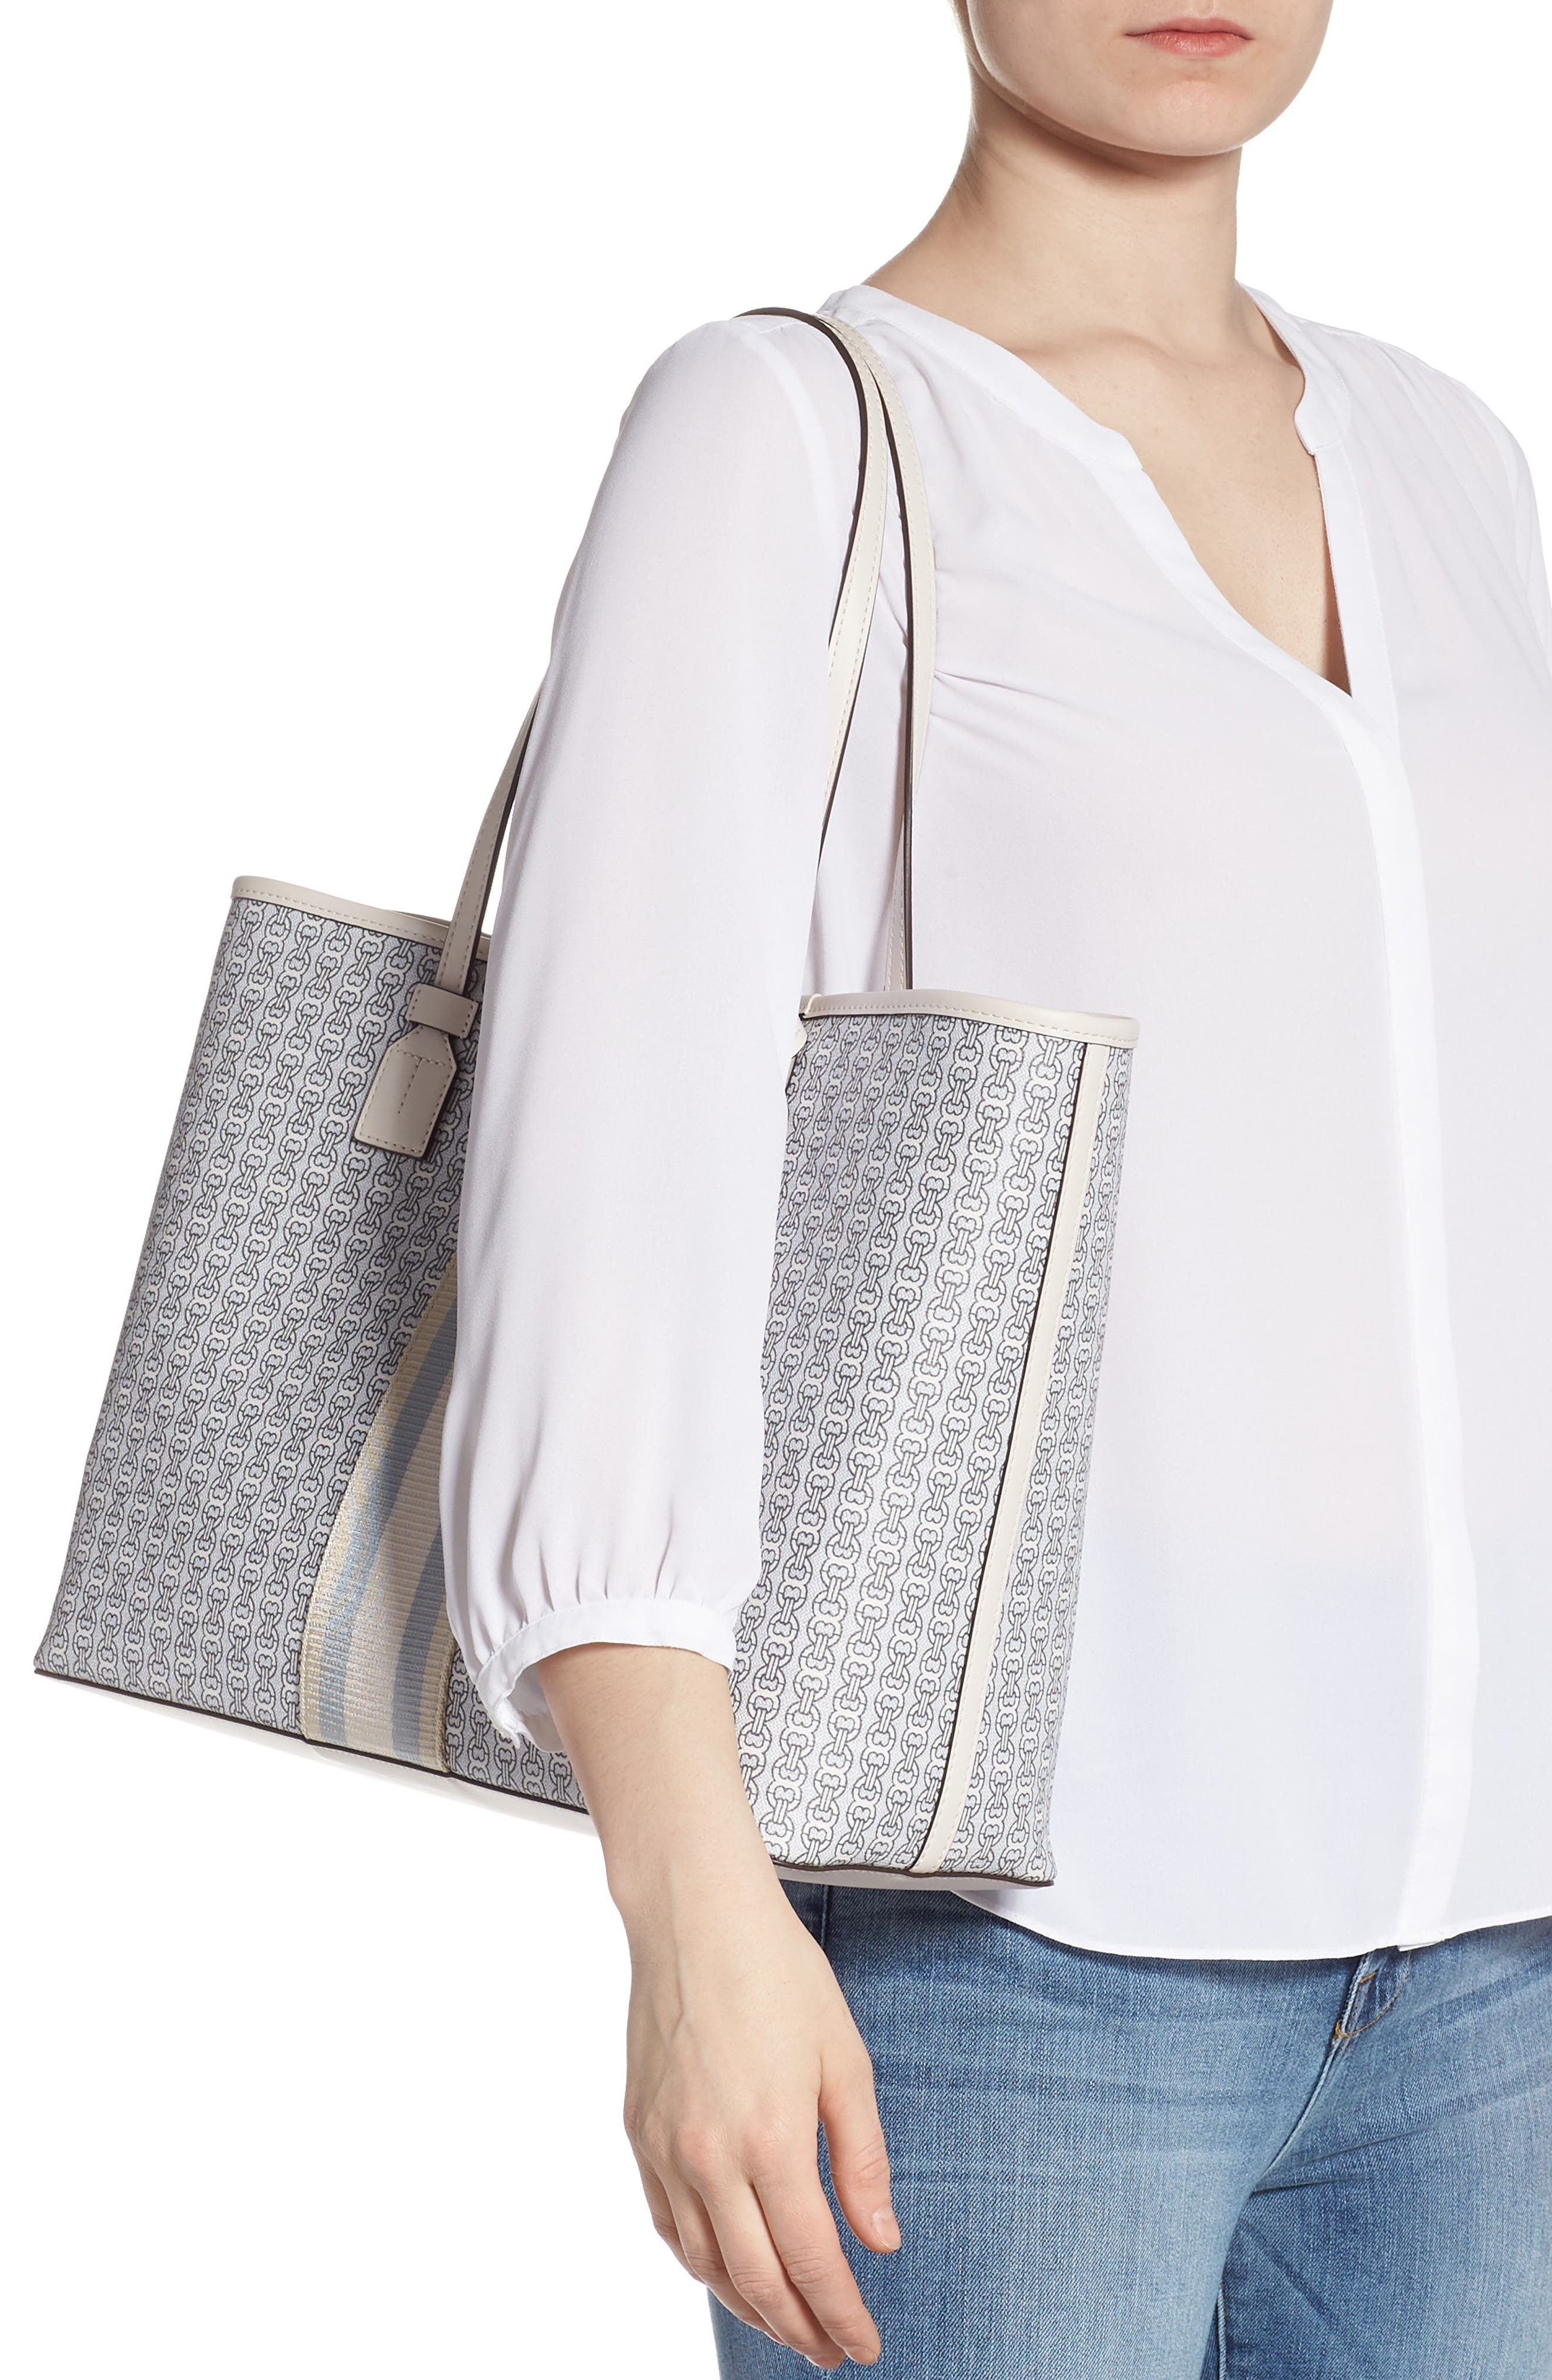 Gemini Link Coated Canvas Tote,                             Alternate thumbnail 2, color,                             NEW IVORY